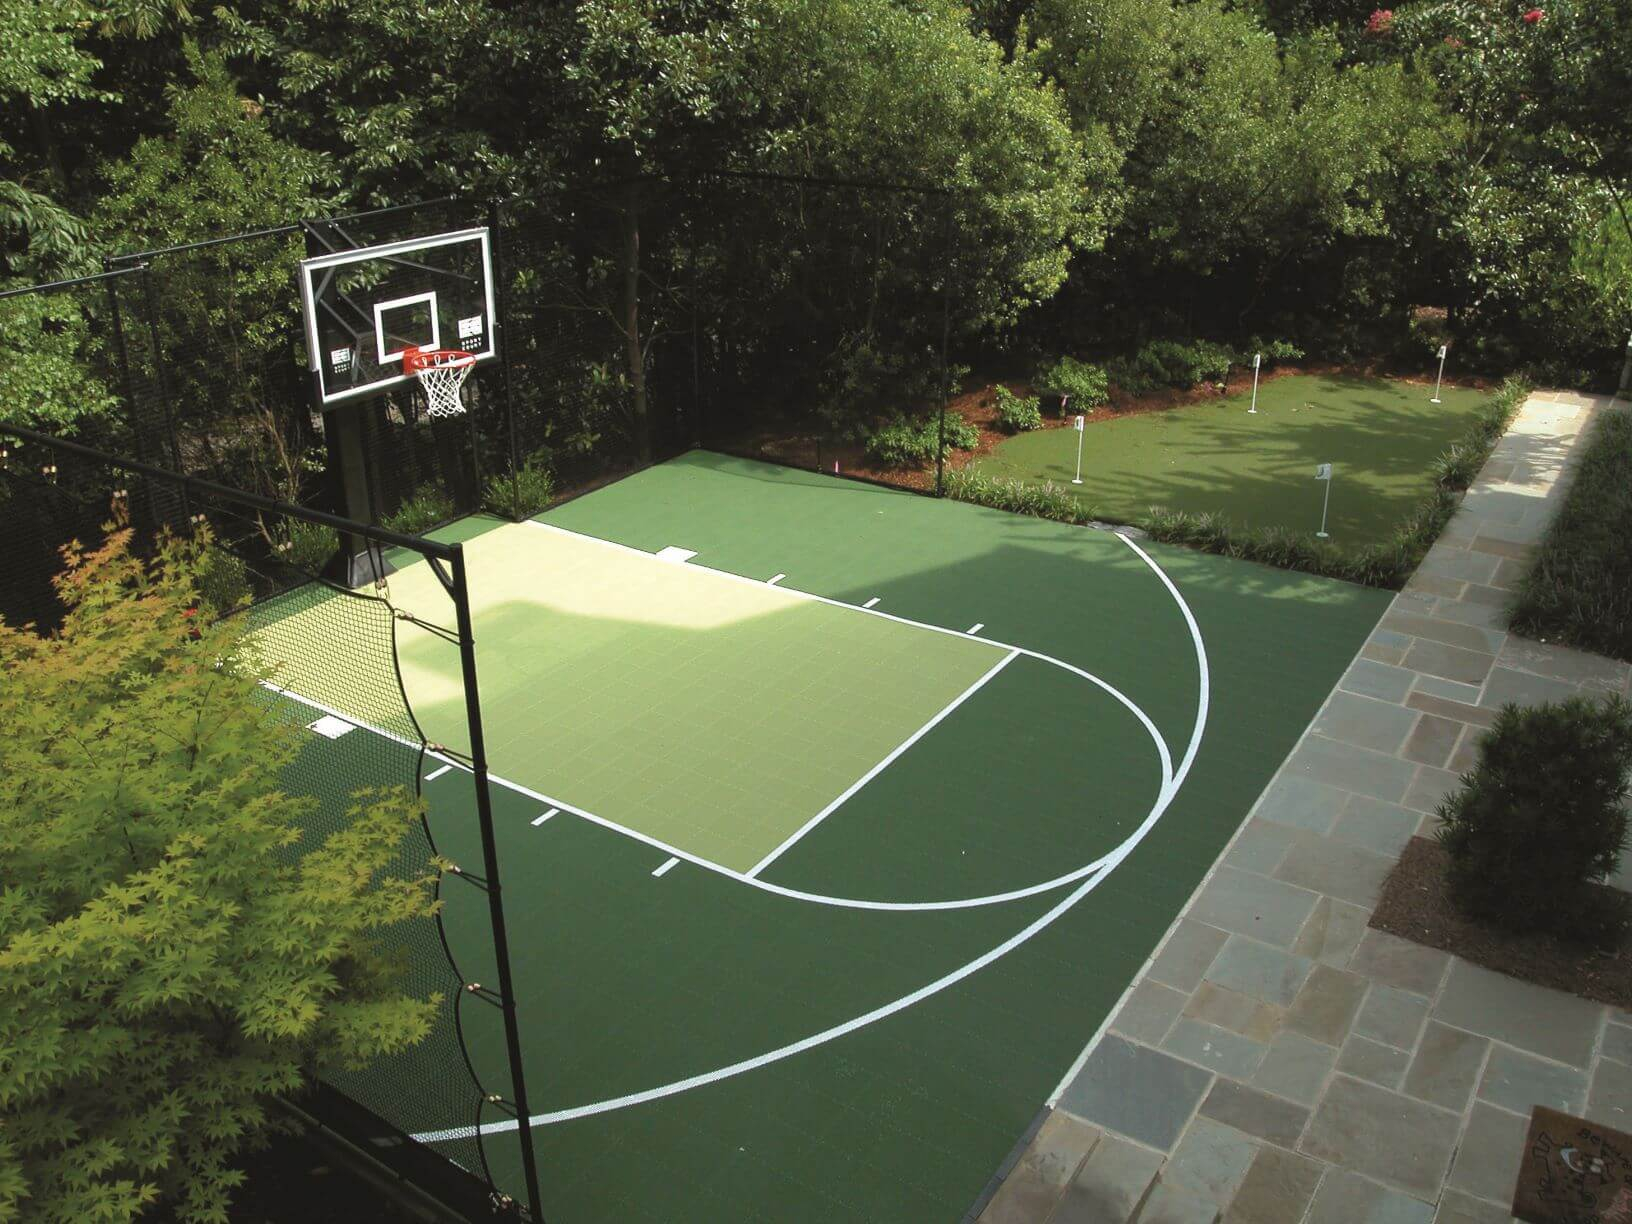 12.SIMPHOME.COM design ideas backyard basketball court allsport america inc in backyard sport court ideas